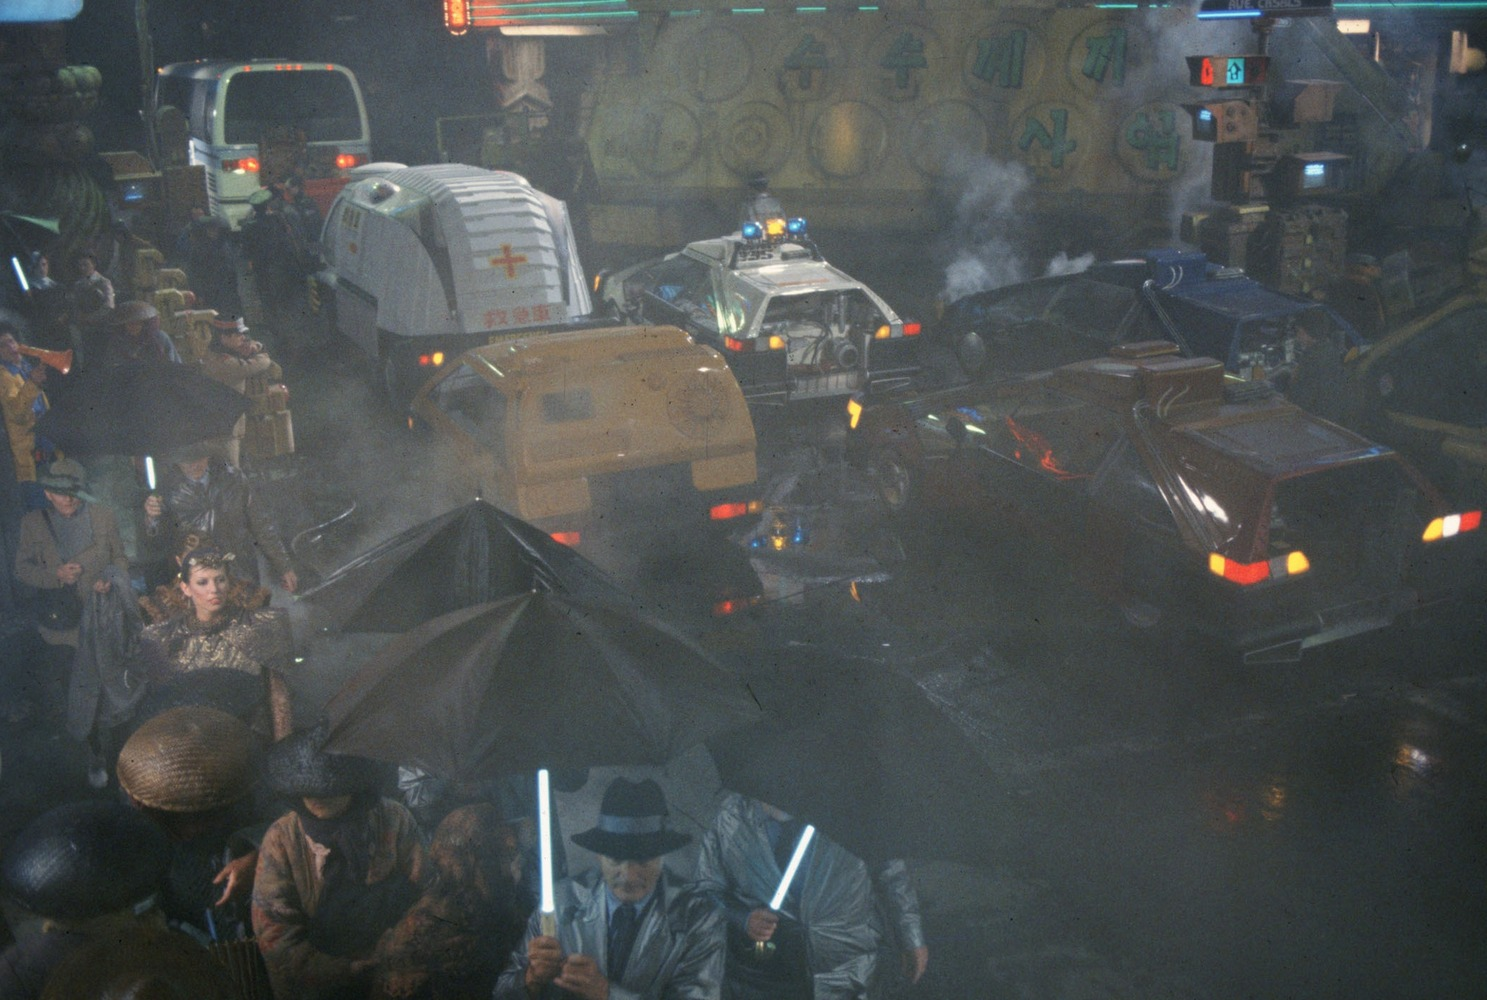 Gimme More Bananas: Blade Runner - photo#13